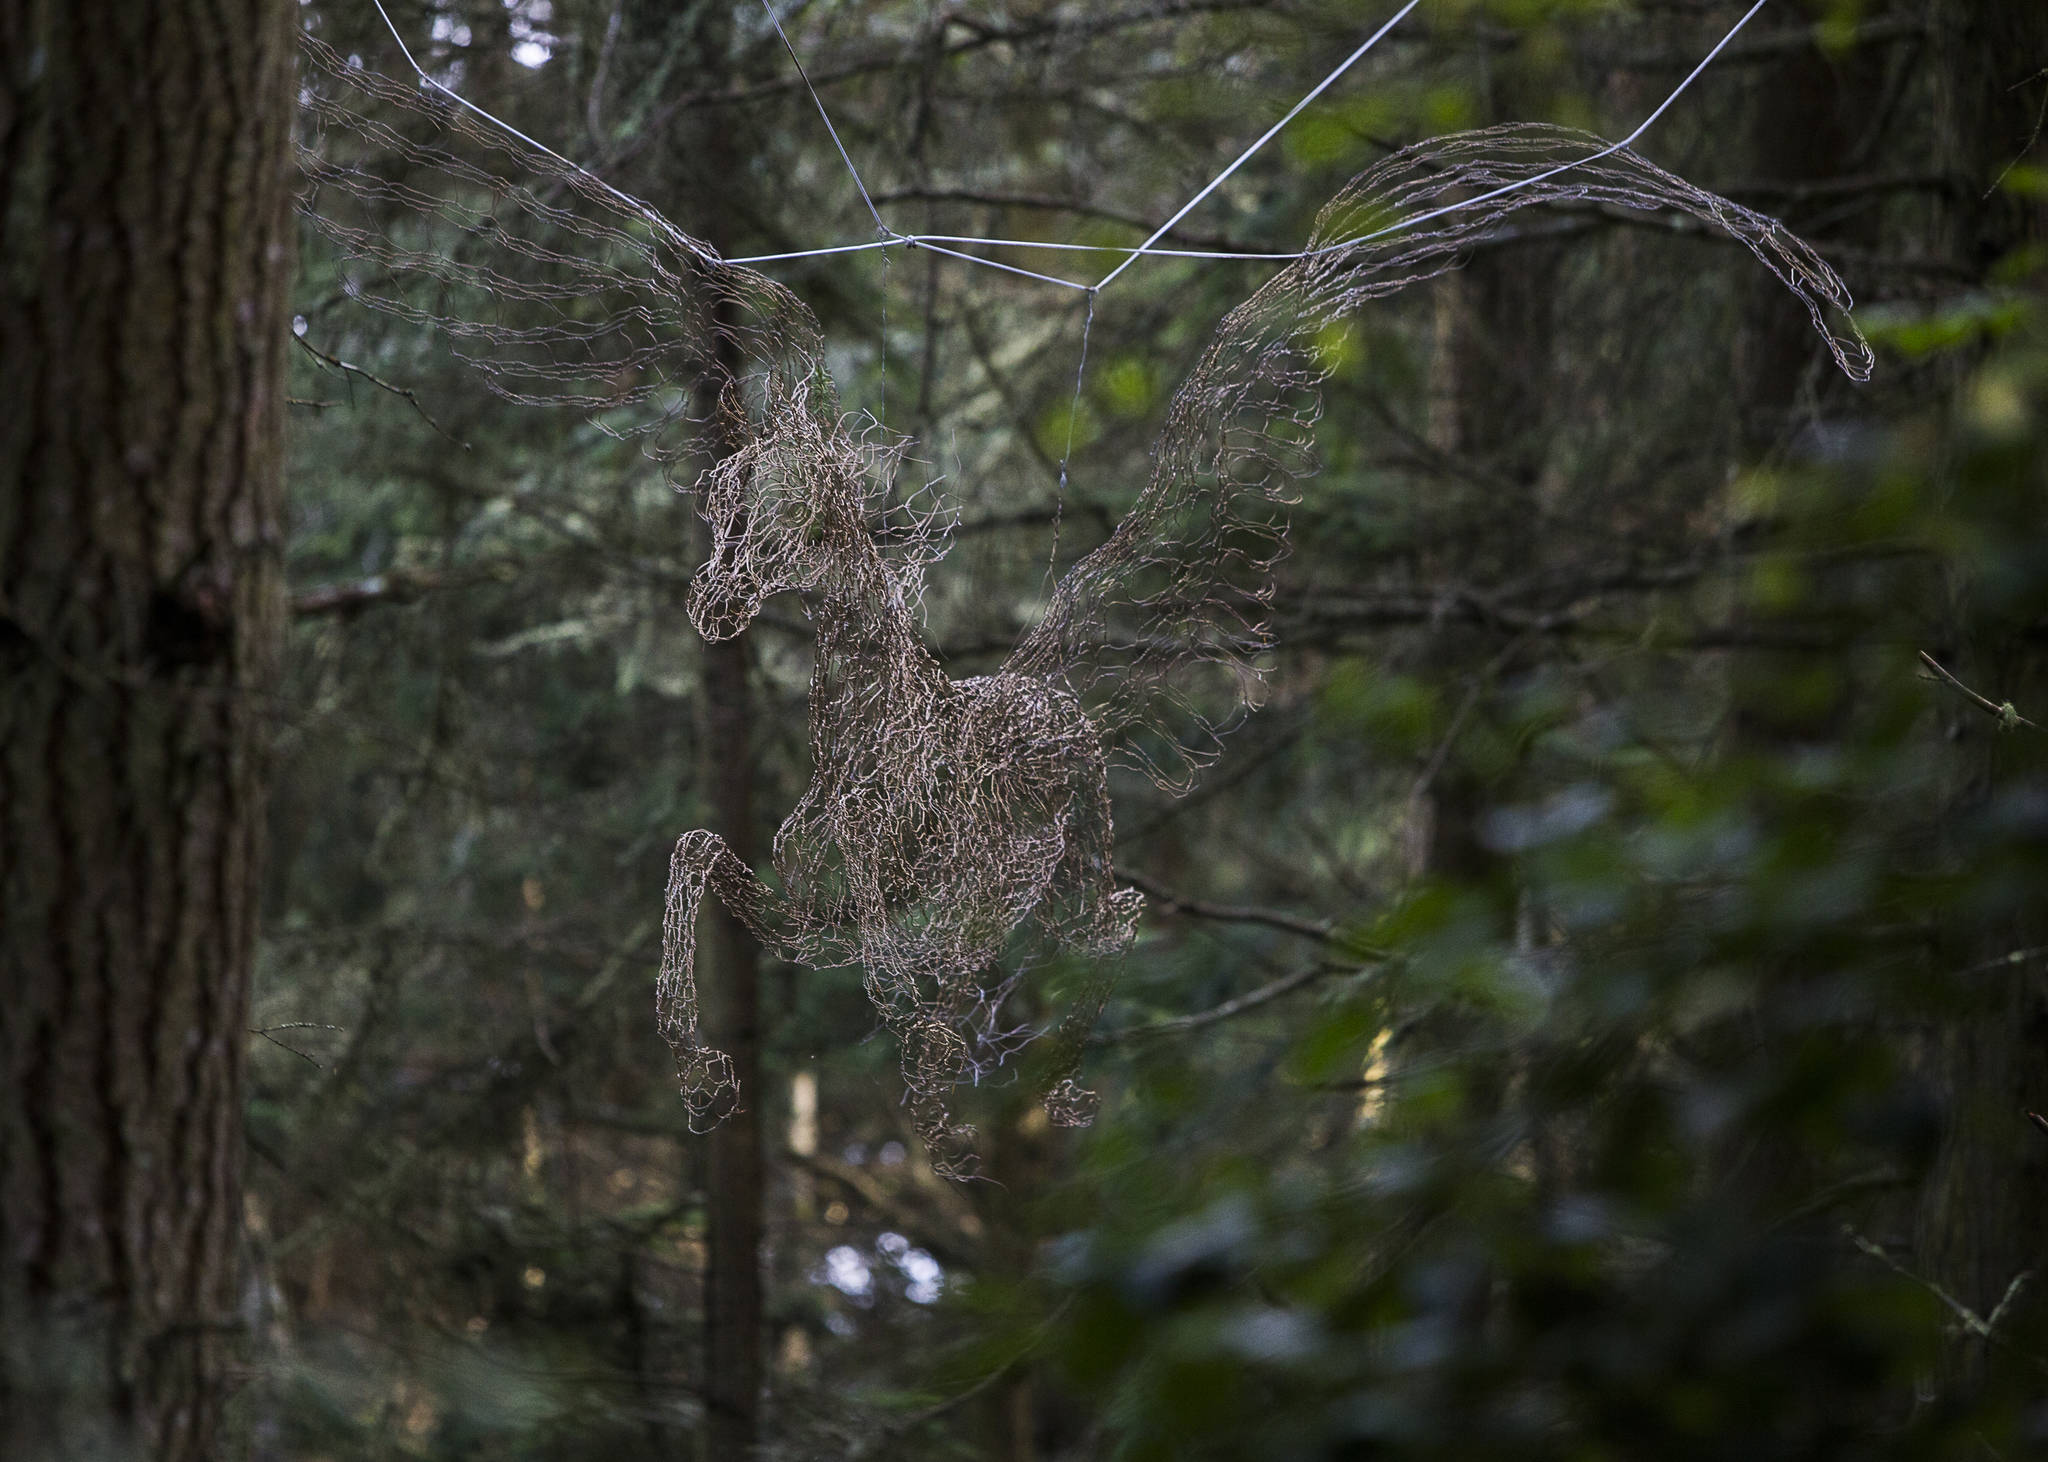 """Elizabeth Berrien's """"Pegasus"""" — which was hung in the trees with the help of Shaun Sears, star of the Animal Planet TV show """"Treetop Cat Rescue"""" — is on display in the new Price Sculpture Forest in Coupeville. (Olivia Vanni / The Herald)"""